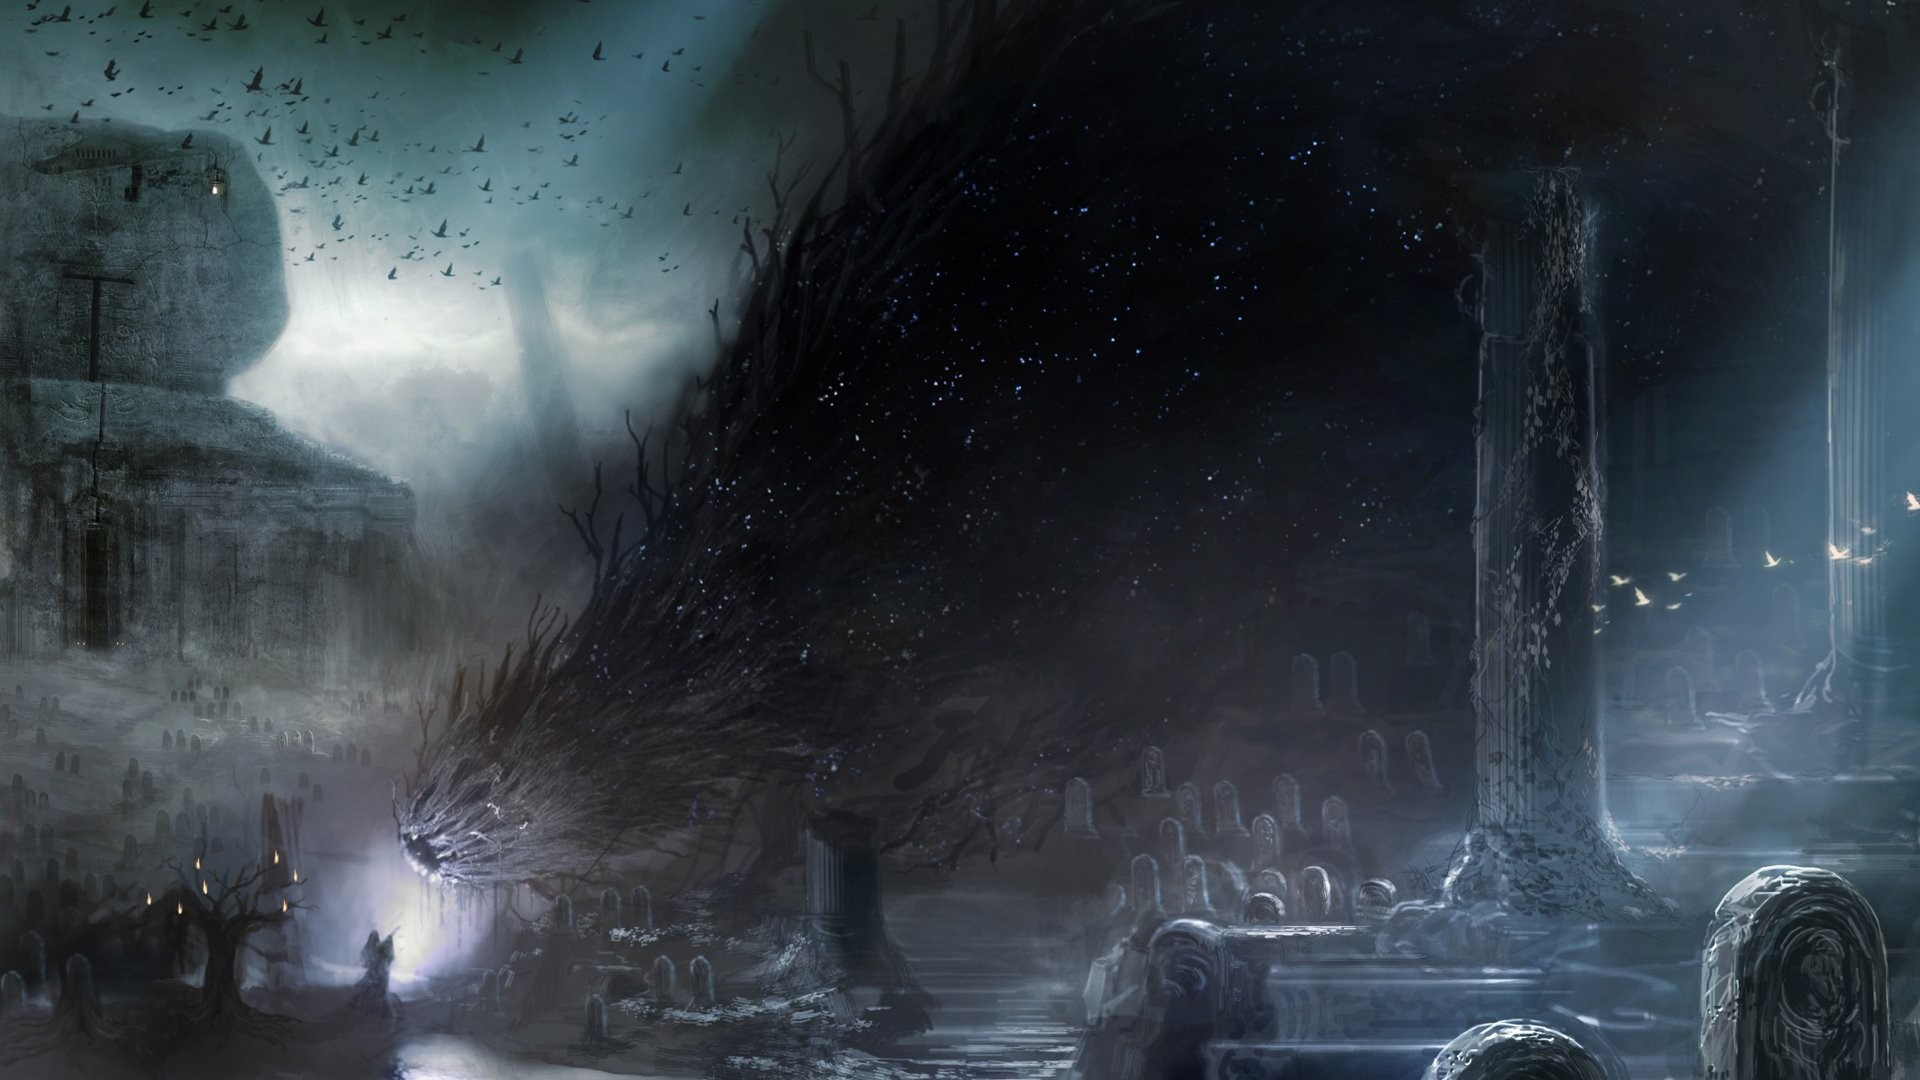 Res: 1920x1080, Demon's Souls Video Game · HD Wallpaper | Background Image ID:206864